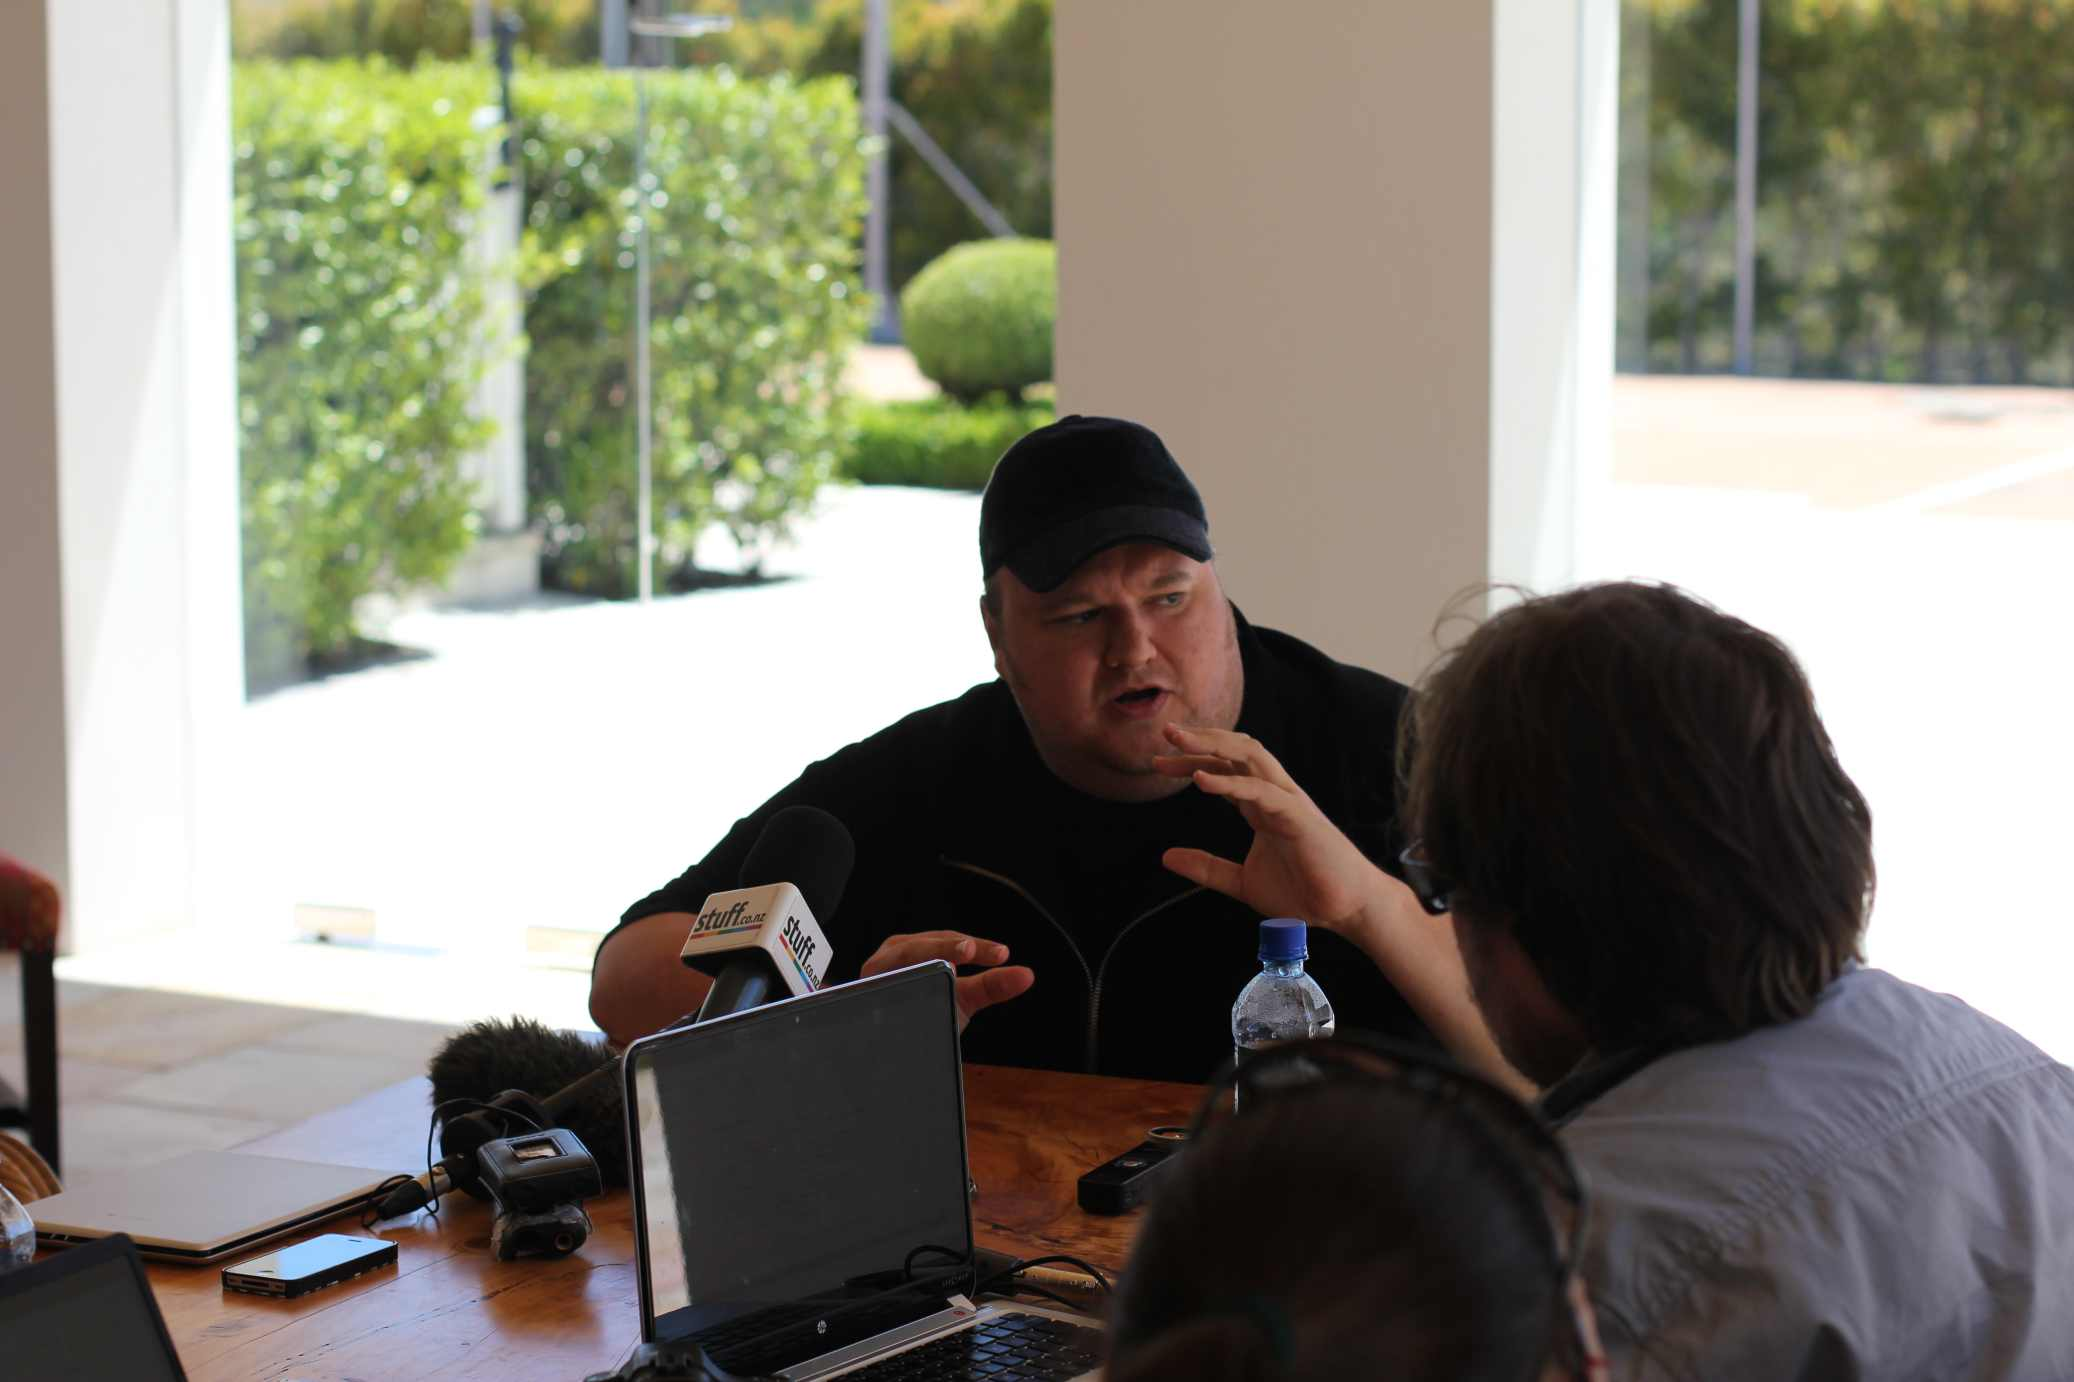 dotcomtalking Face to face with Kim Dotcom as he launches Mega, talks about Megakey and the future of free content